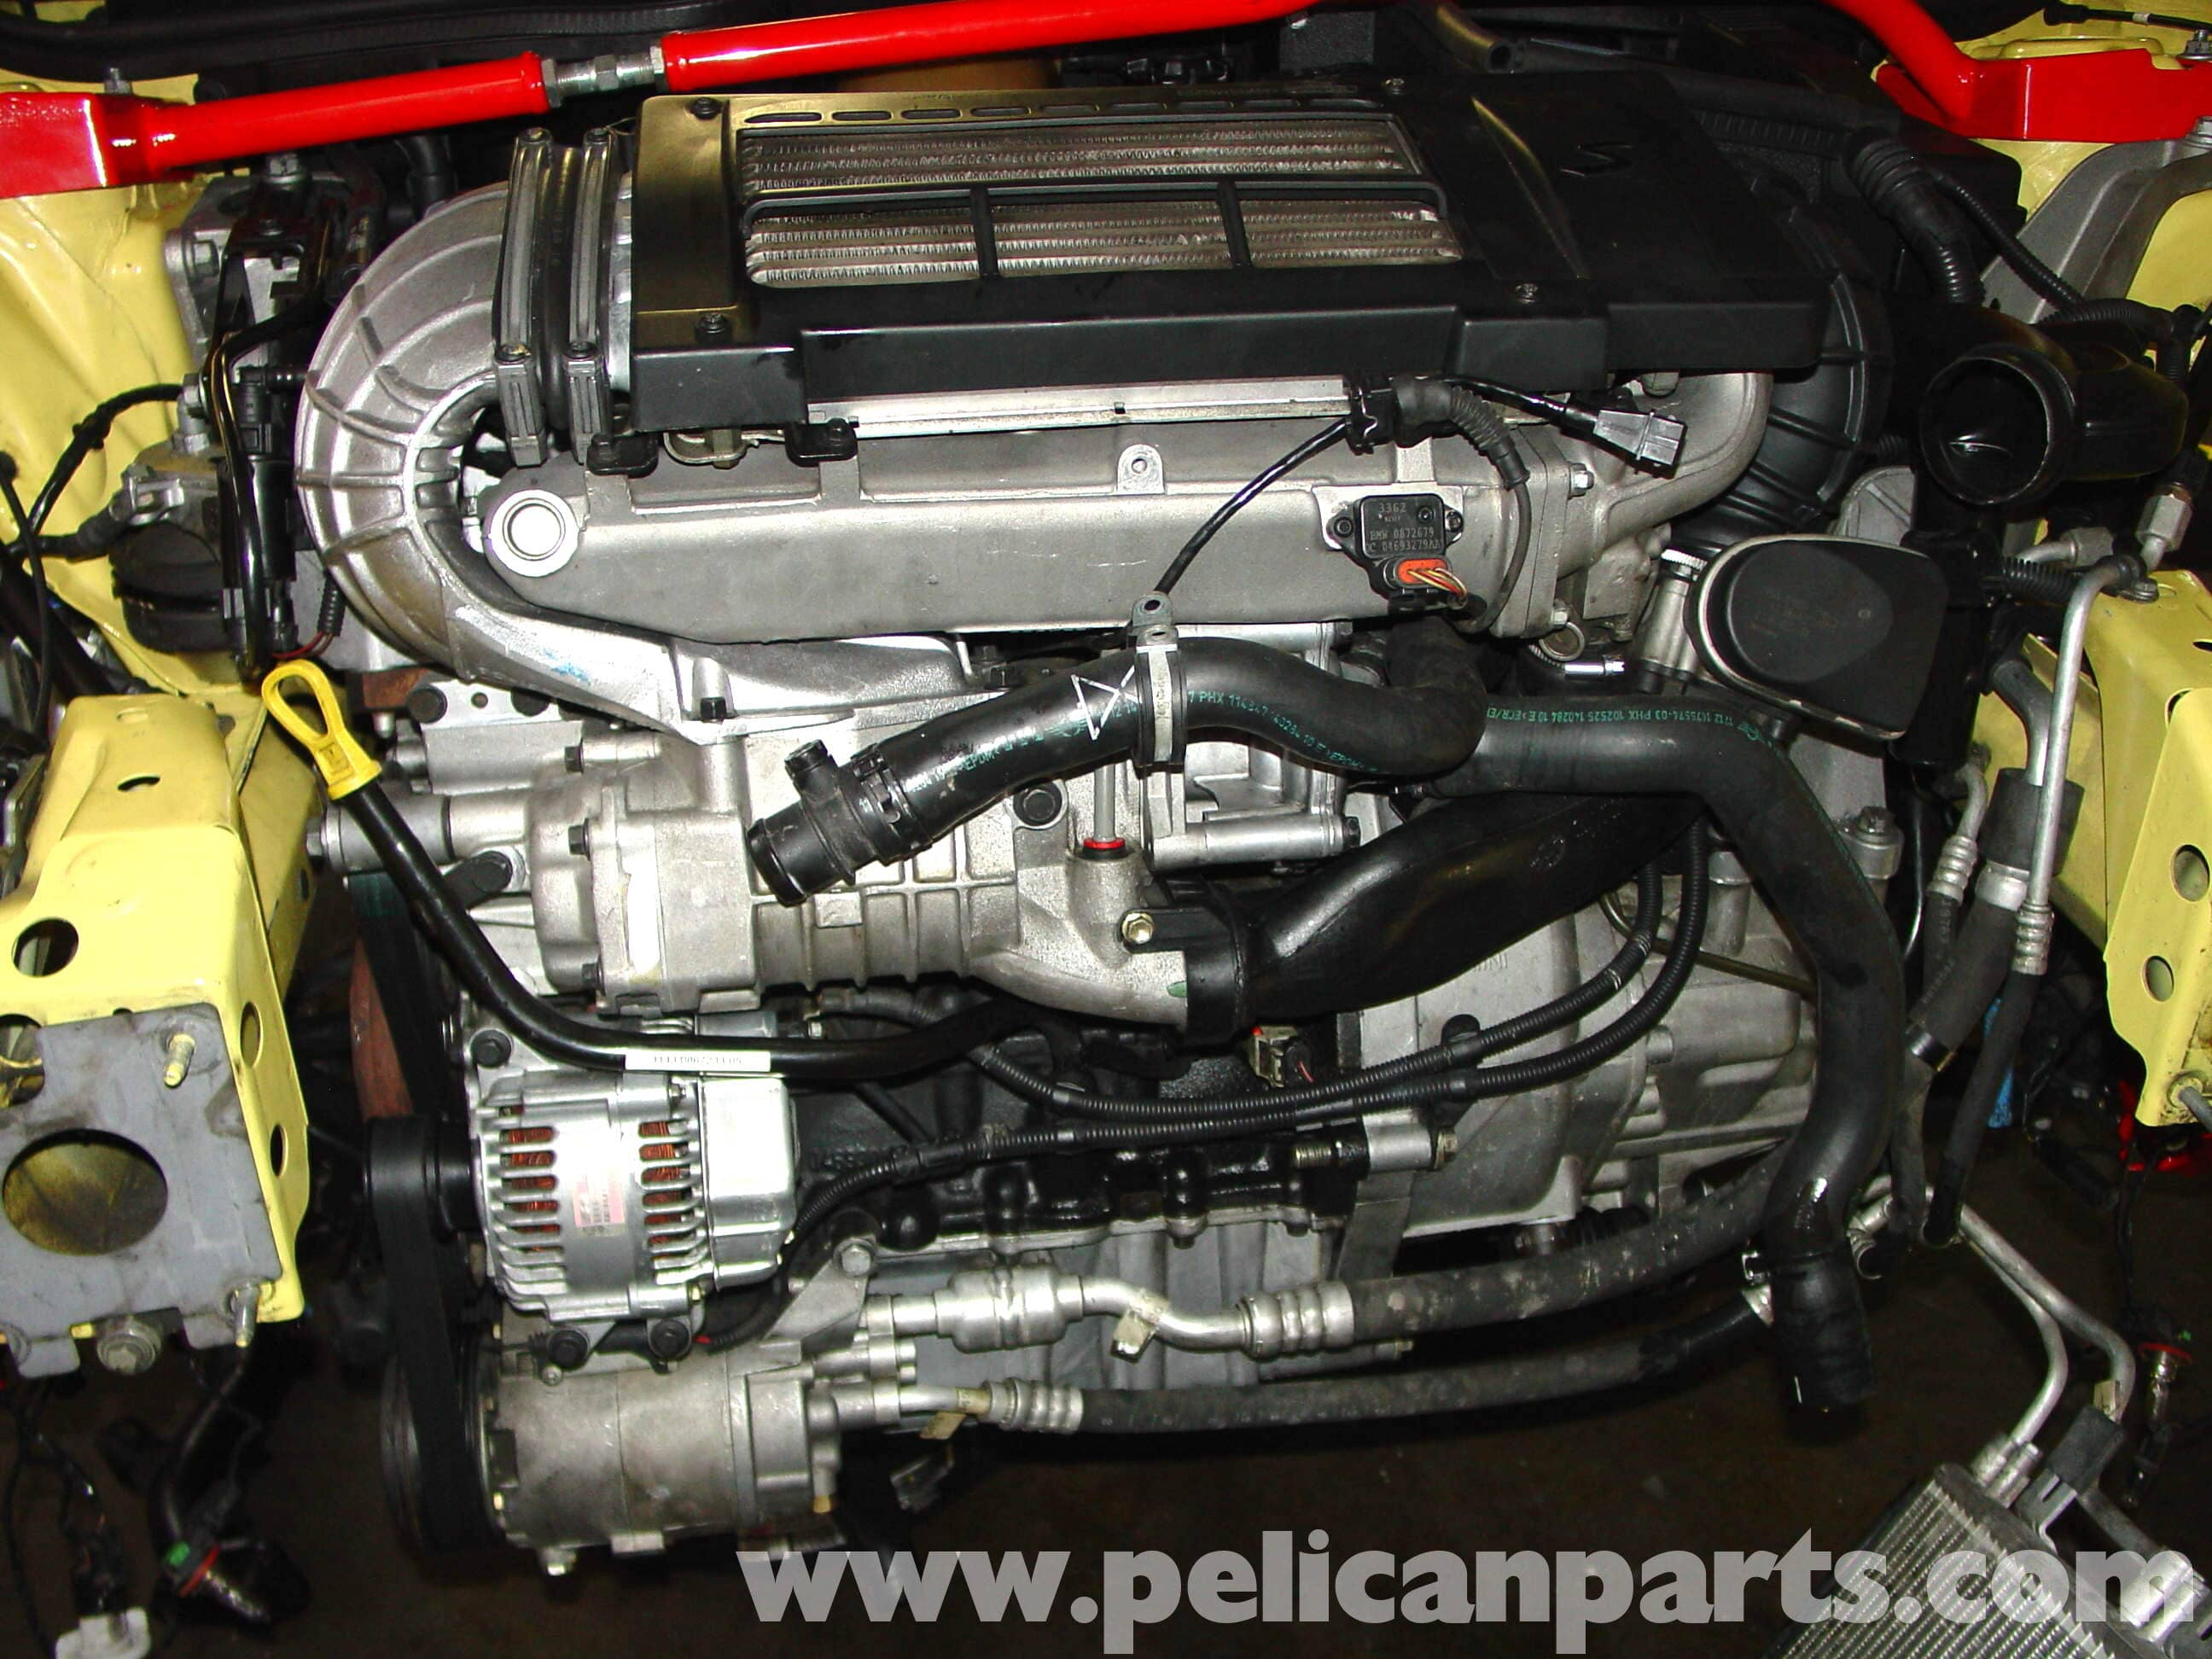 Pic11 mini cooper radiator, thermostat and hose replacement (r50 r52 r53 mini cooper 2004 ac wiring diagram at gsmportal.co